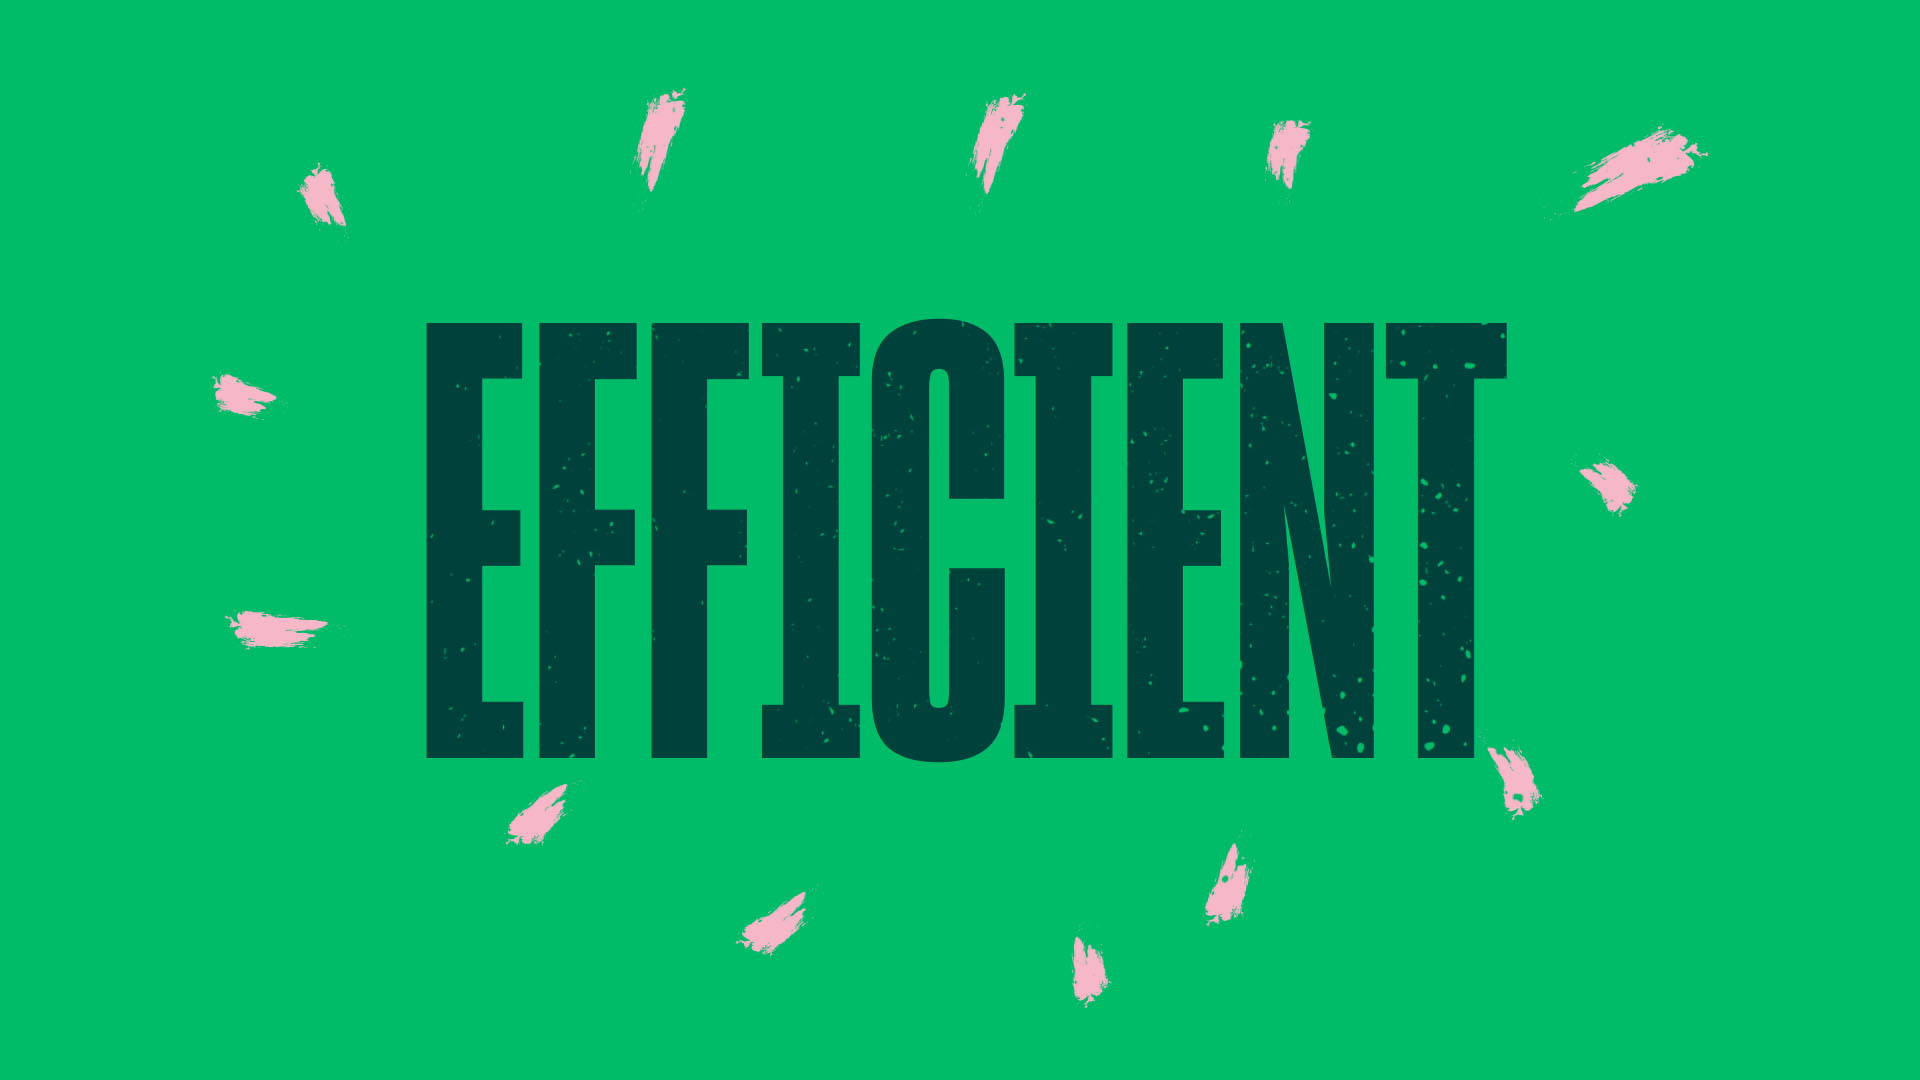 kinetic typography animation london efficient